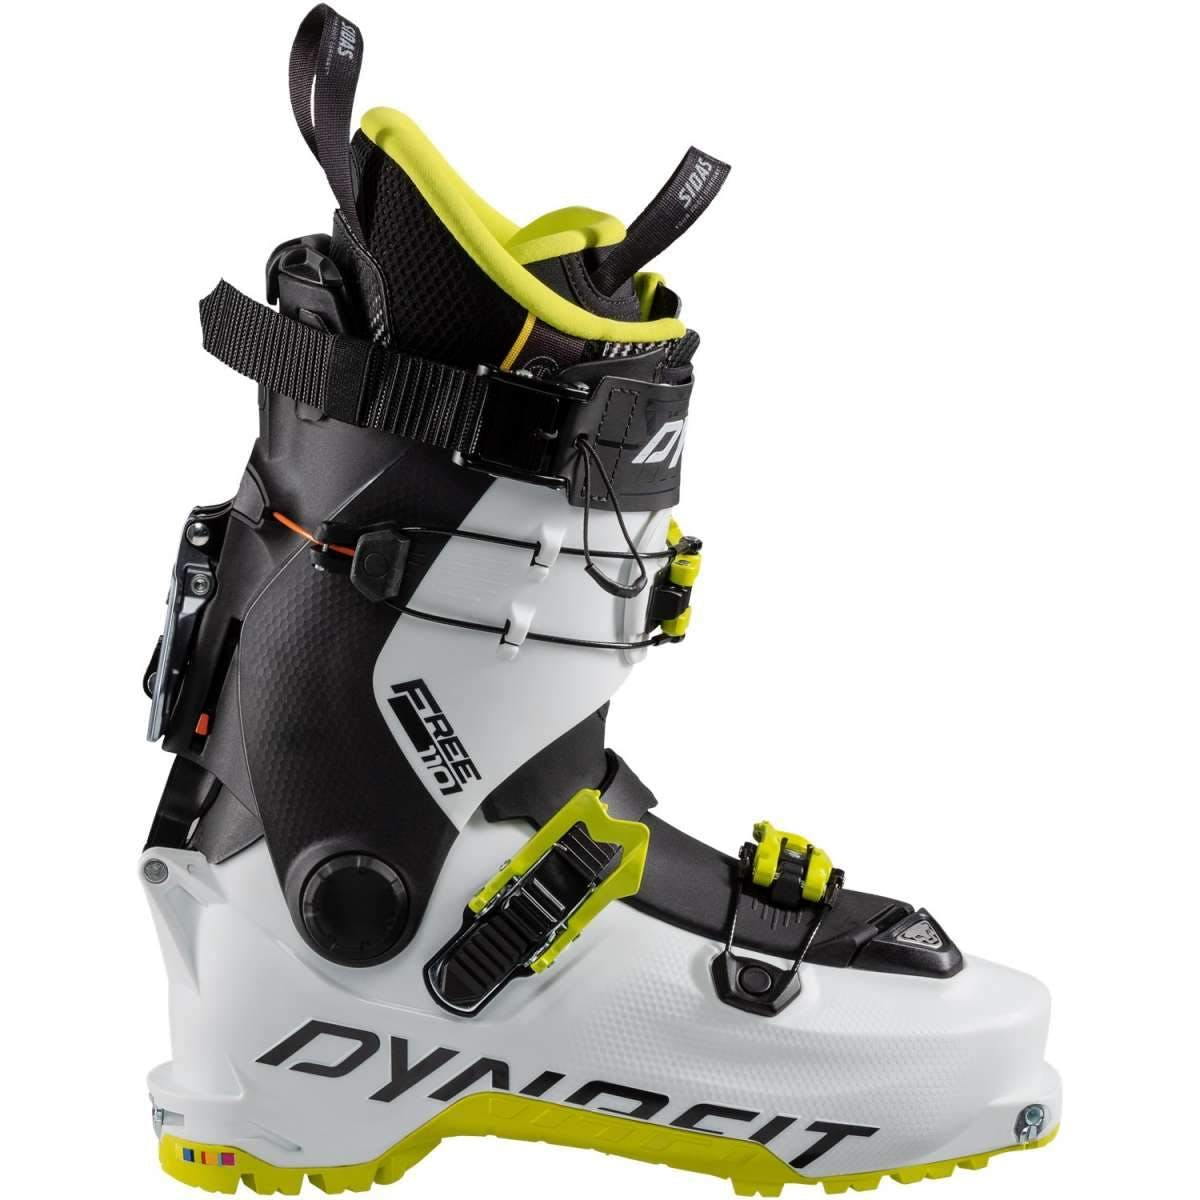 Dynafit Hoji Free 110 Ski Boots In White/lime Punch Size 30.5